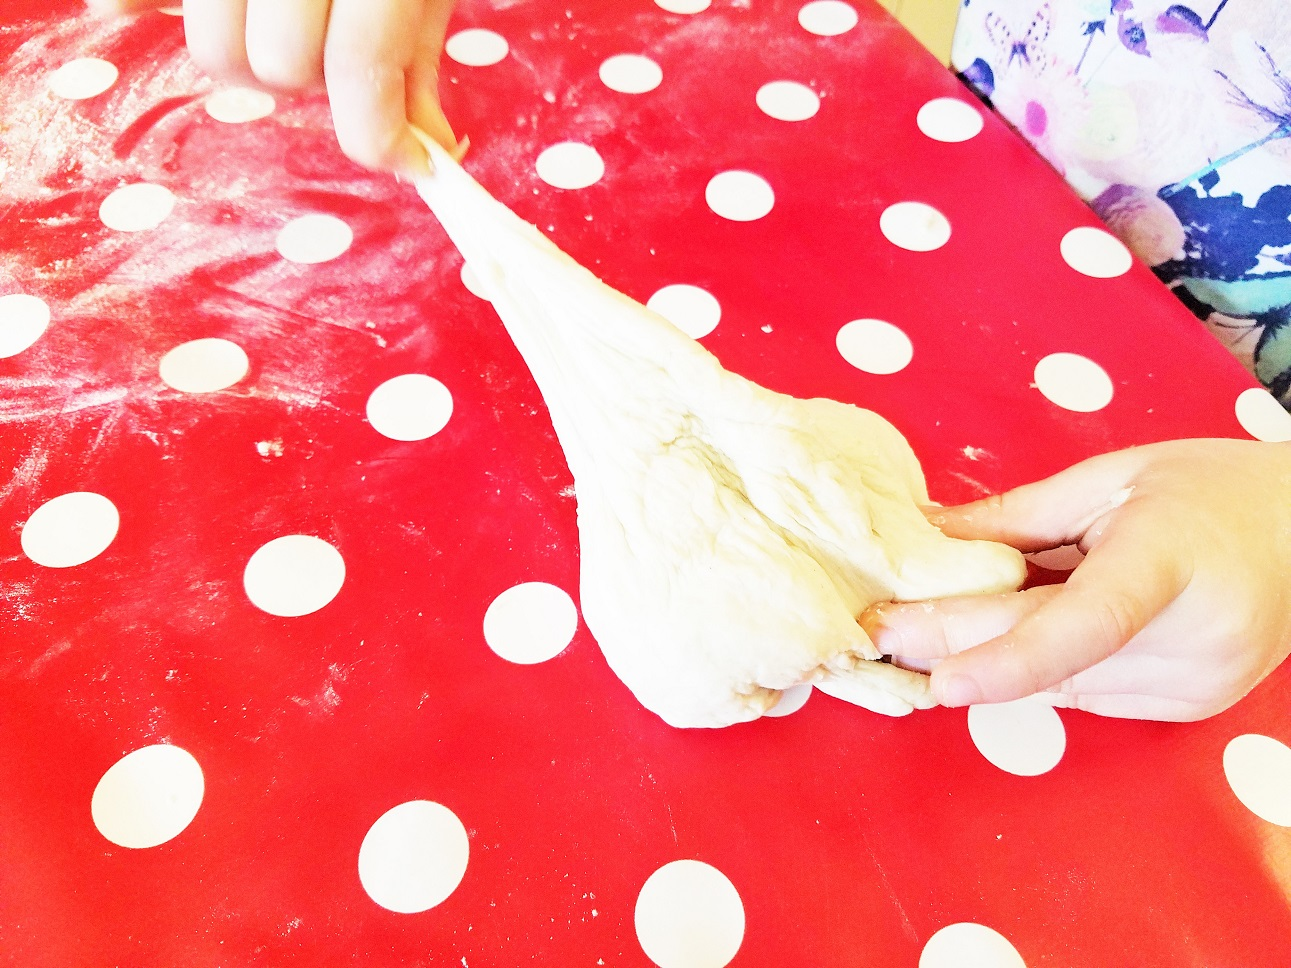 How A Bread Maker Made Baking With this Kids Fun Again - child pulling at bread dough